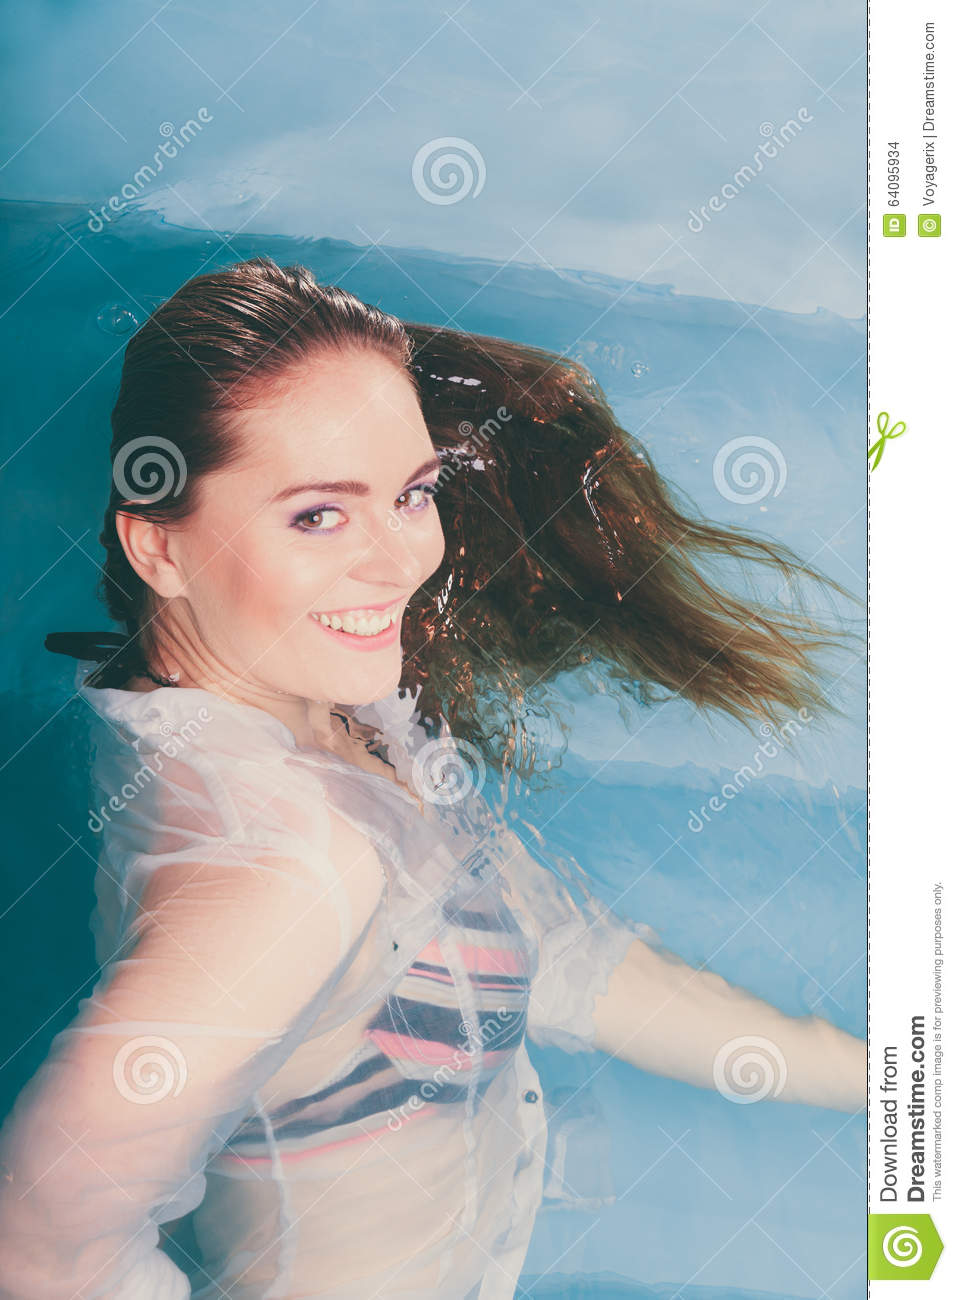 Portrait Of Mysterious Seductive Woman In Water. Stock